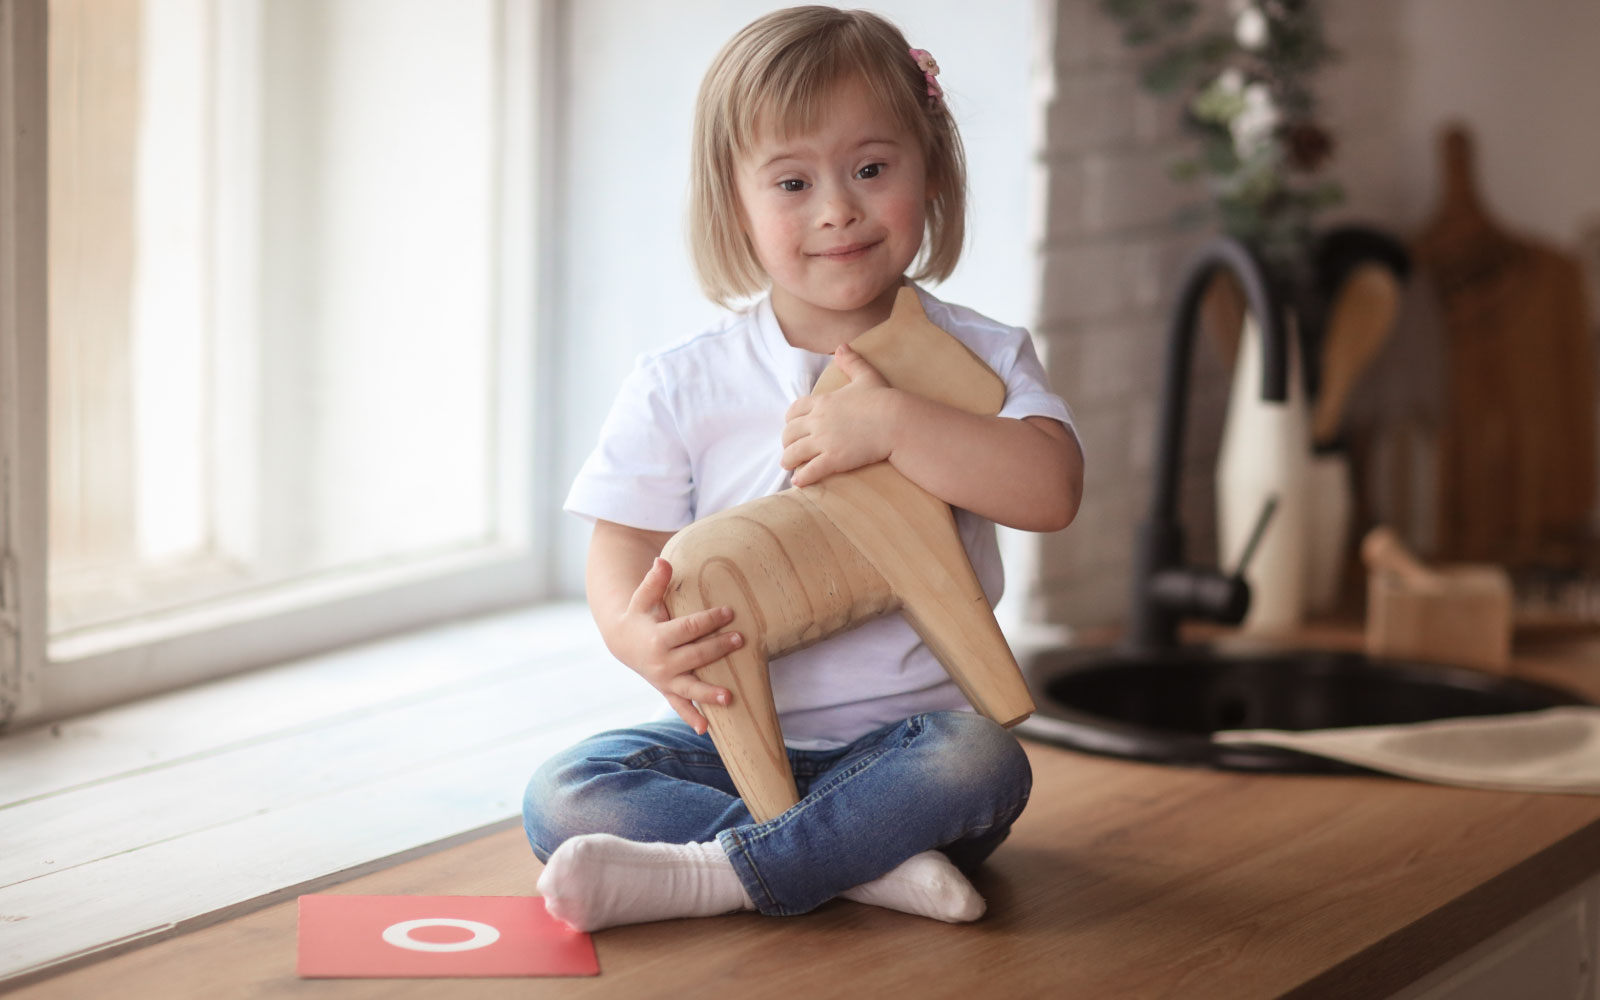 Just ONE Health and Social Care | Providing Care, Support & Accomodation | Child with wooden horse